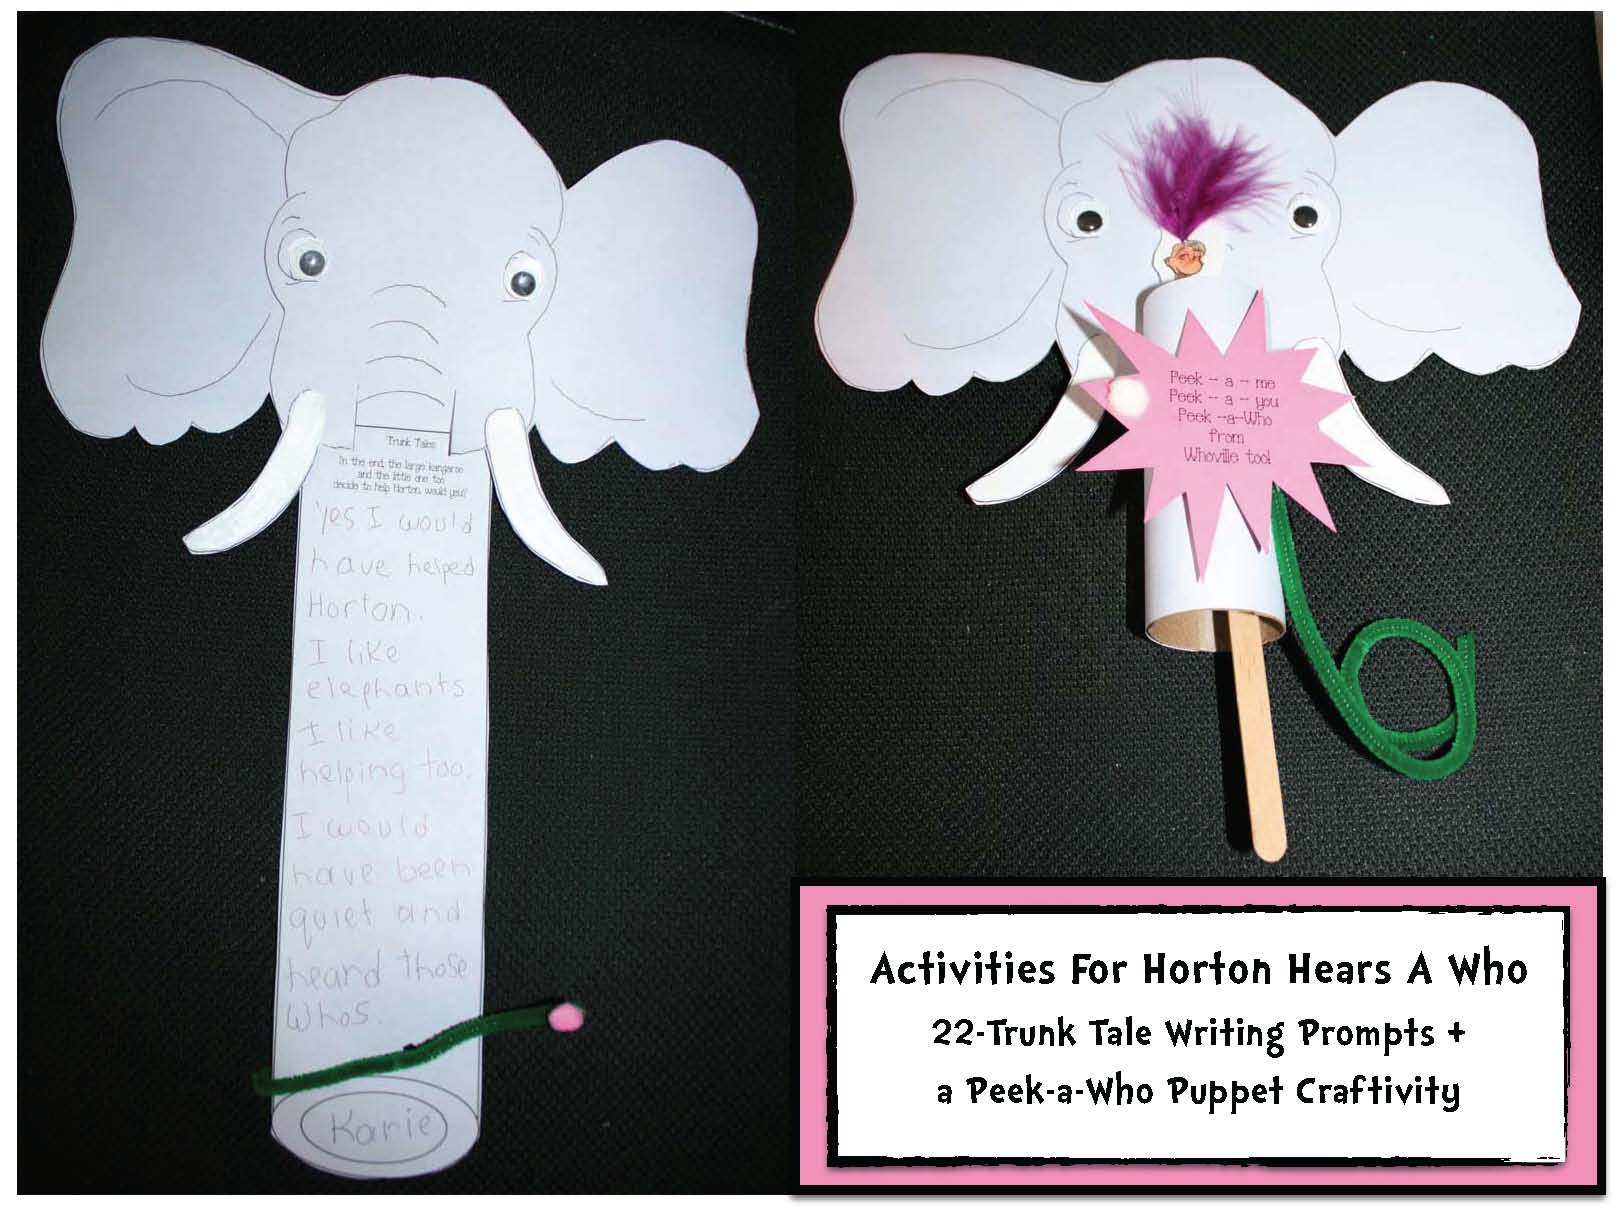 horton hears a who activities, horton crafts, horton writing prompts, elephant crafts, elephant activities, elephant mask, elephant puppet, Seuss activities, Seuss crafts, Seuss games, comparing Elmer with Horton activities, common core Seuss, common core horton hears a who, alphabetical list of words that rhyme with who